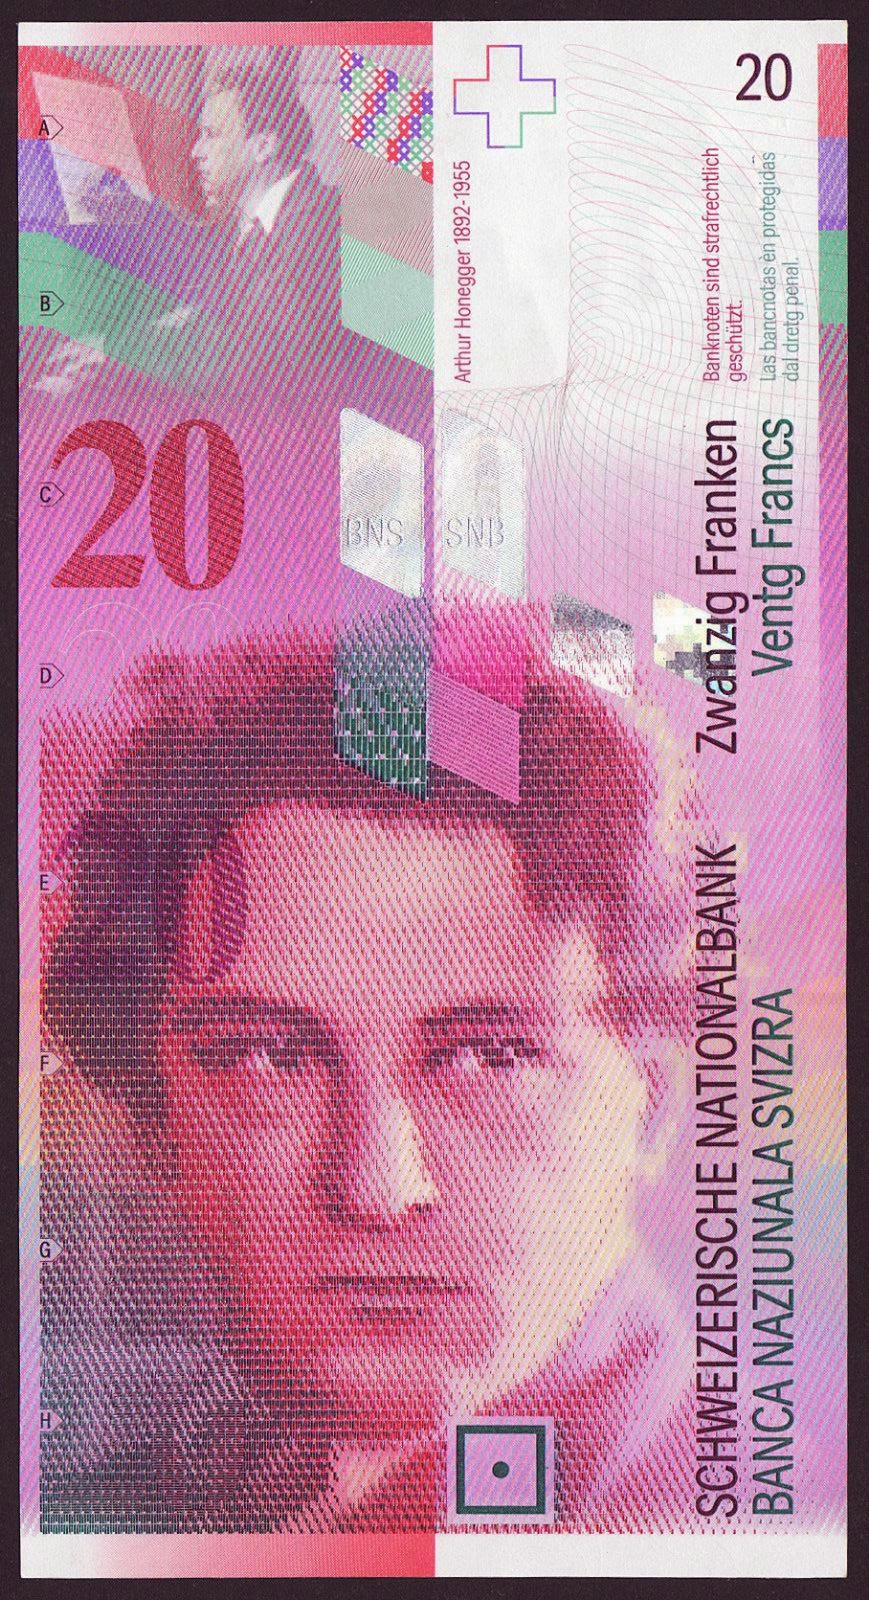 Switzerland Banknotes 20 Swiss Francs